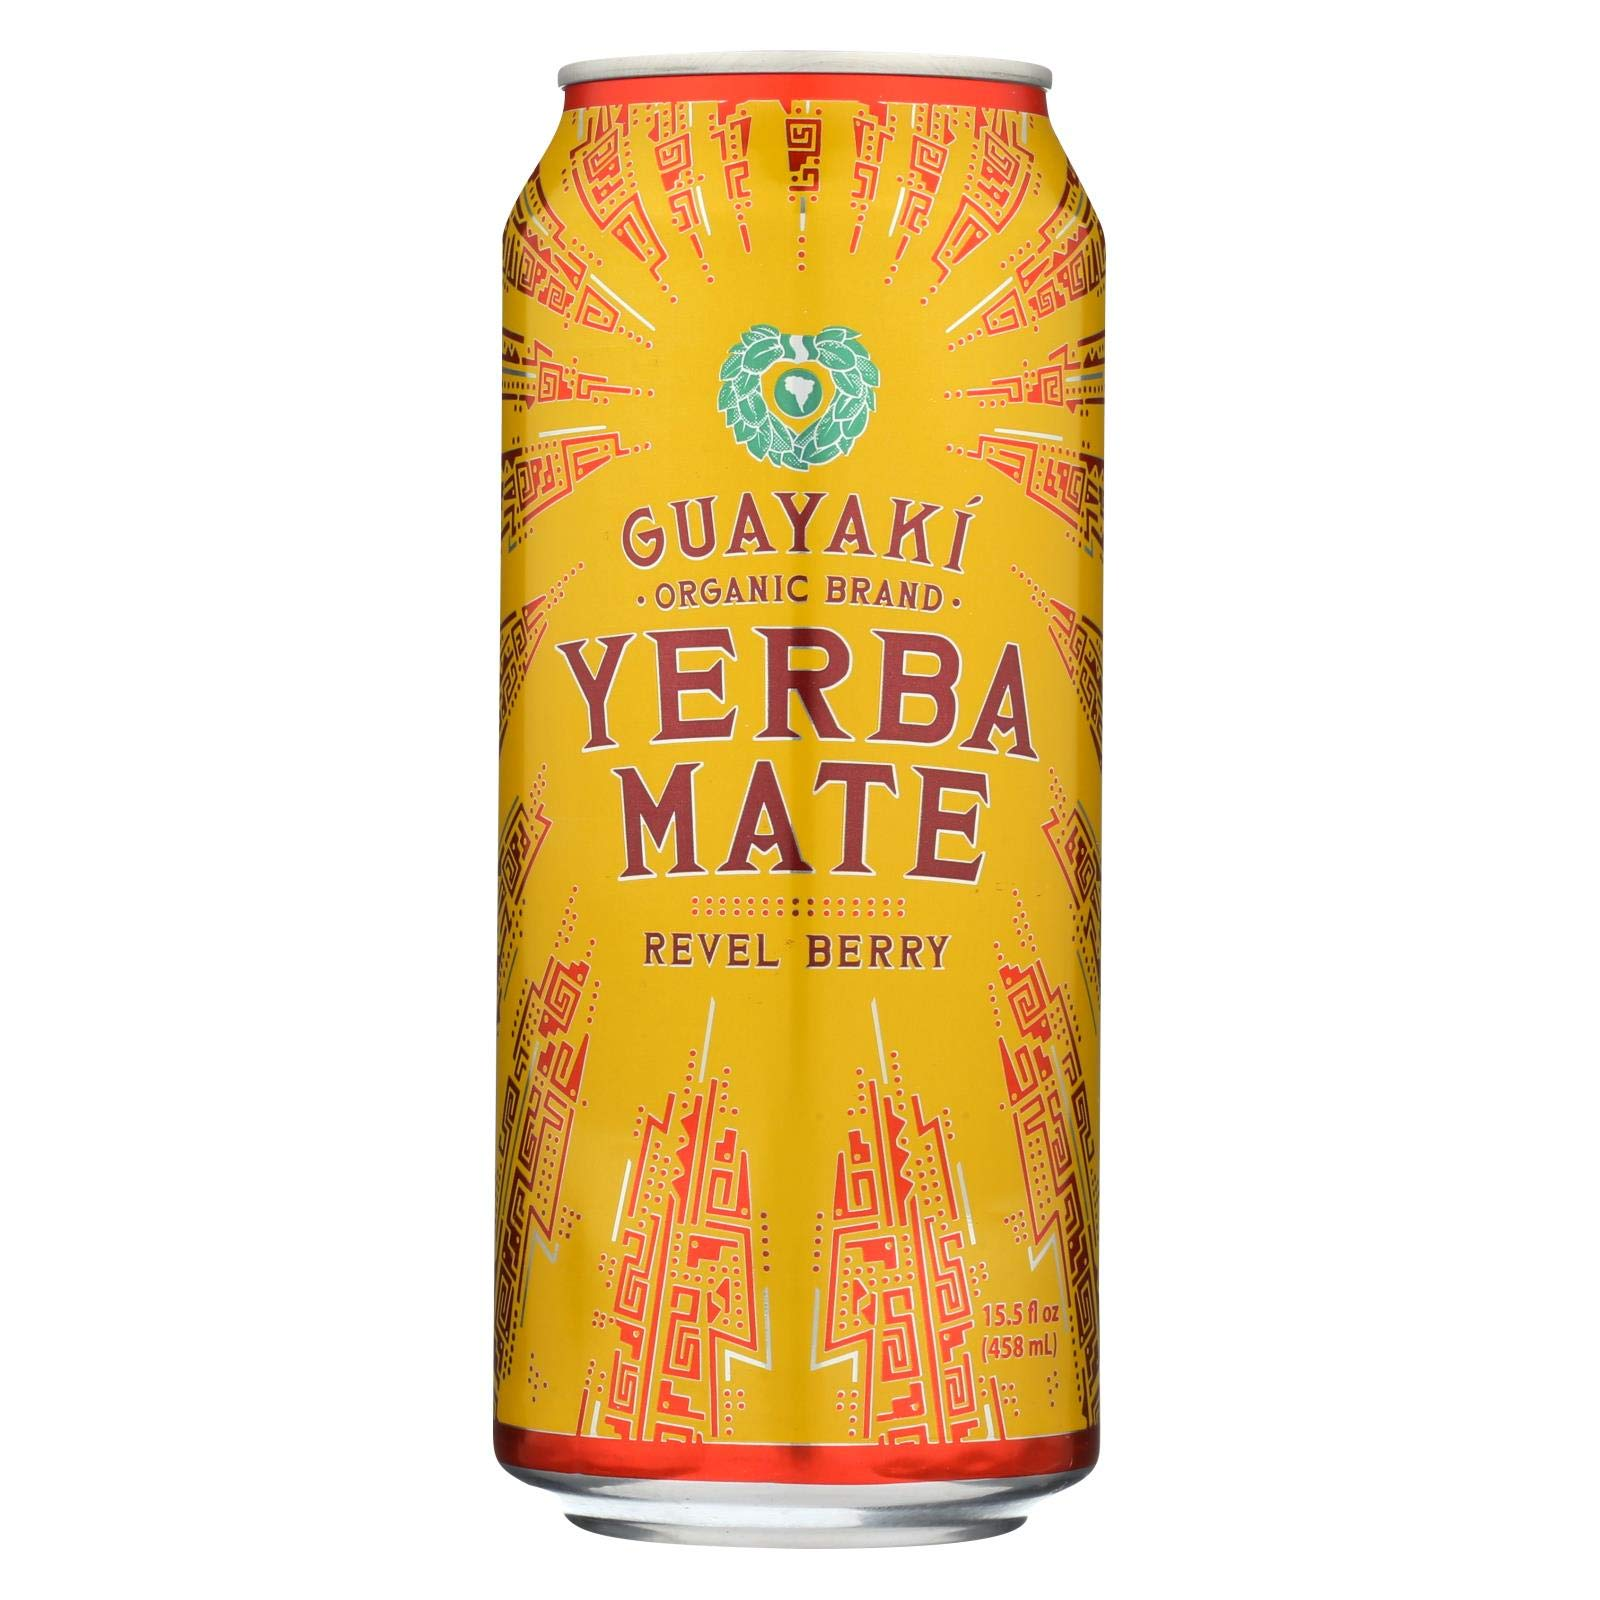 Guayaki Yerba Mate - Revel Berry - Case of 12 - 15.5 Fl oz. by Yerba Mate (Image #1)